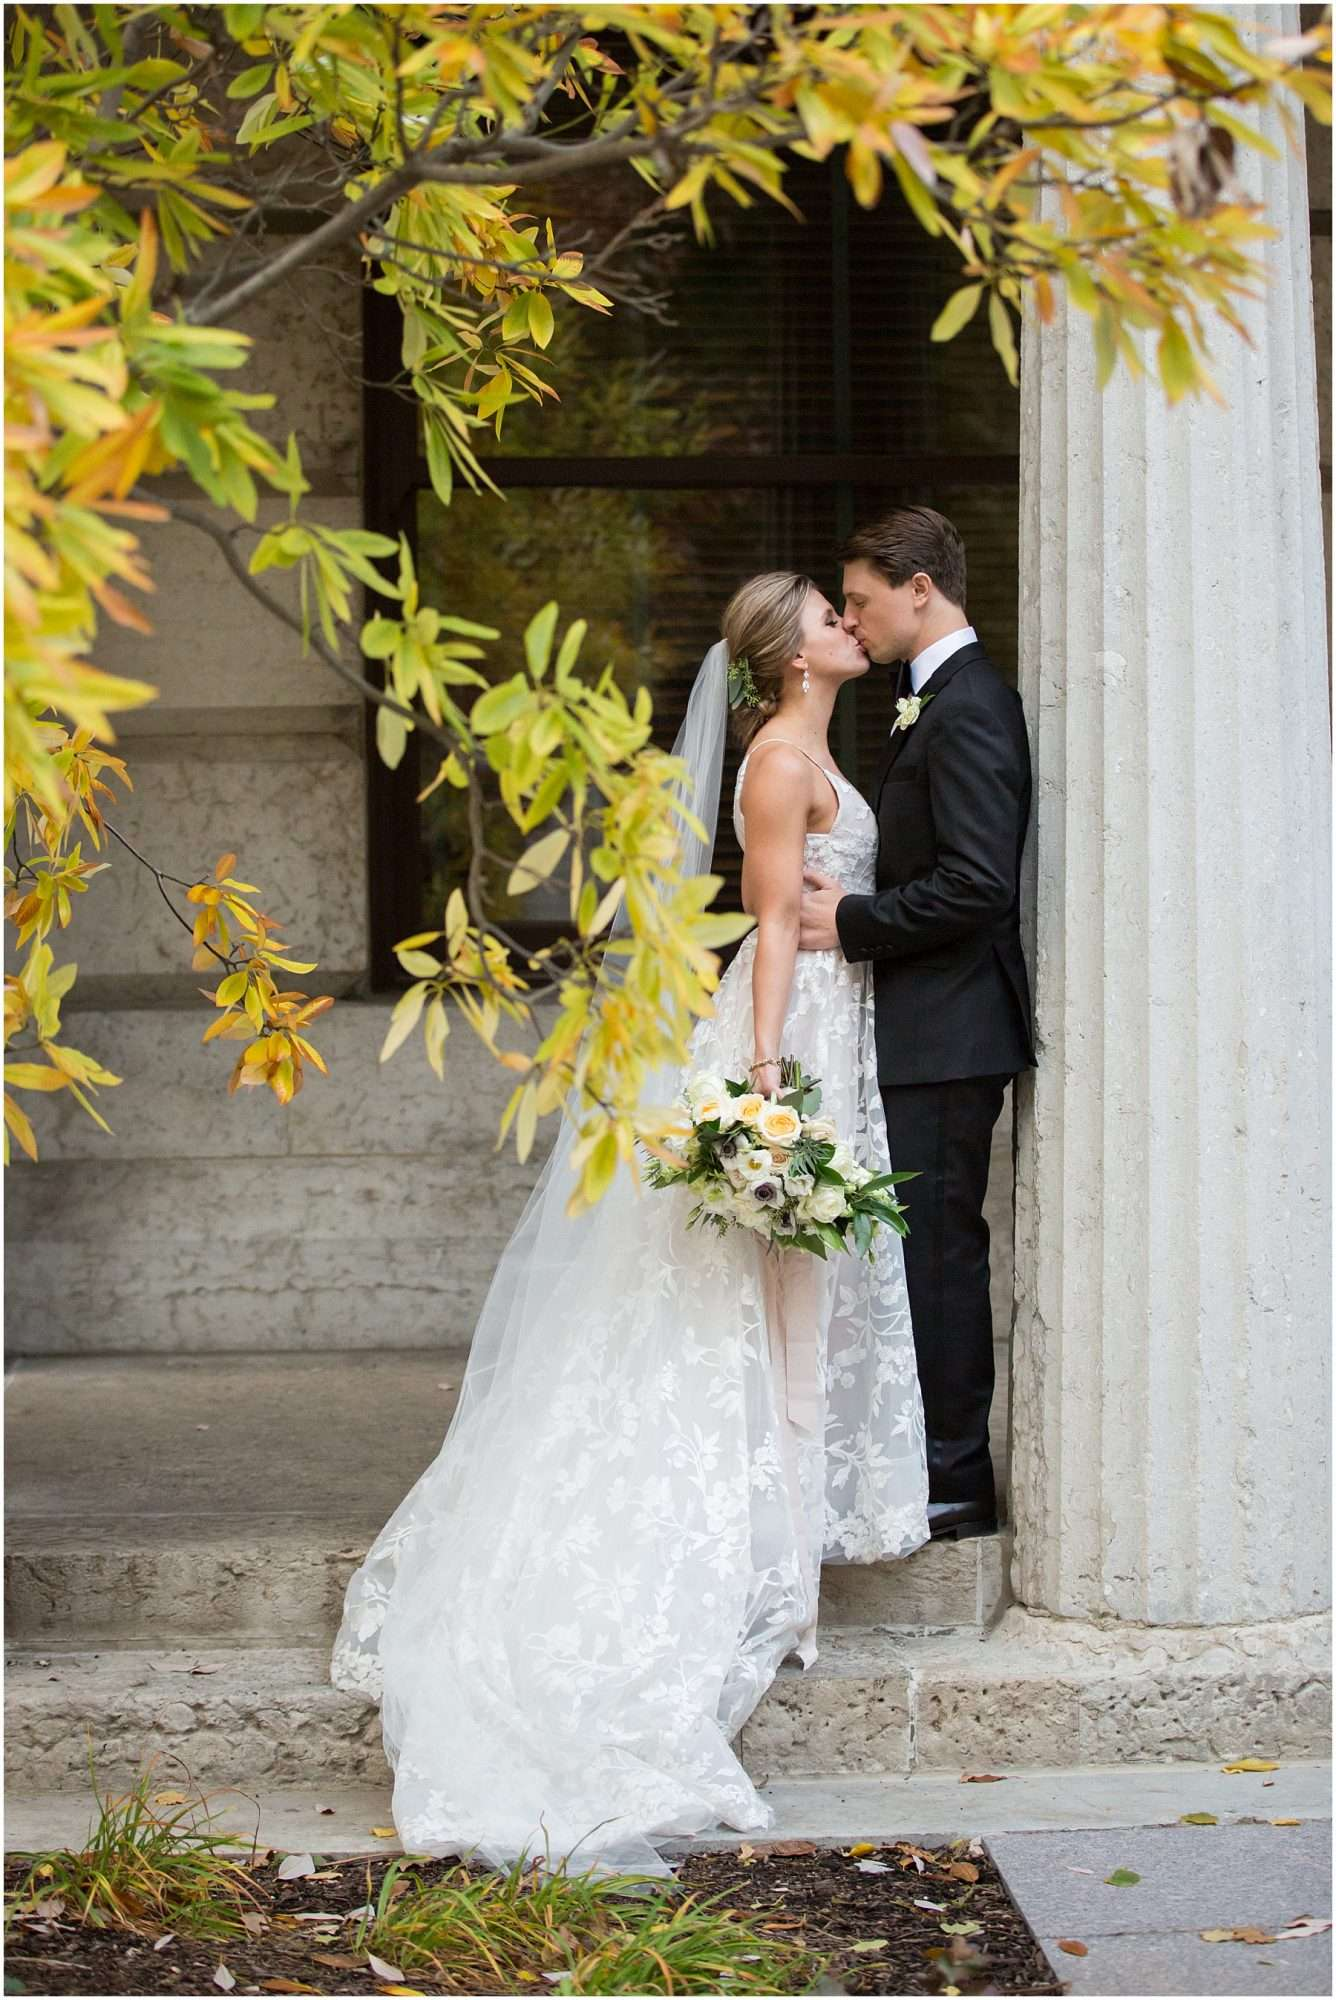 Wedding at the Ohio Statehouse | Columbus Ohio Weddings 142